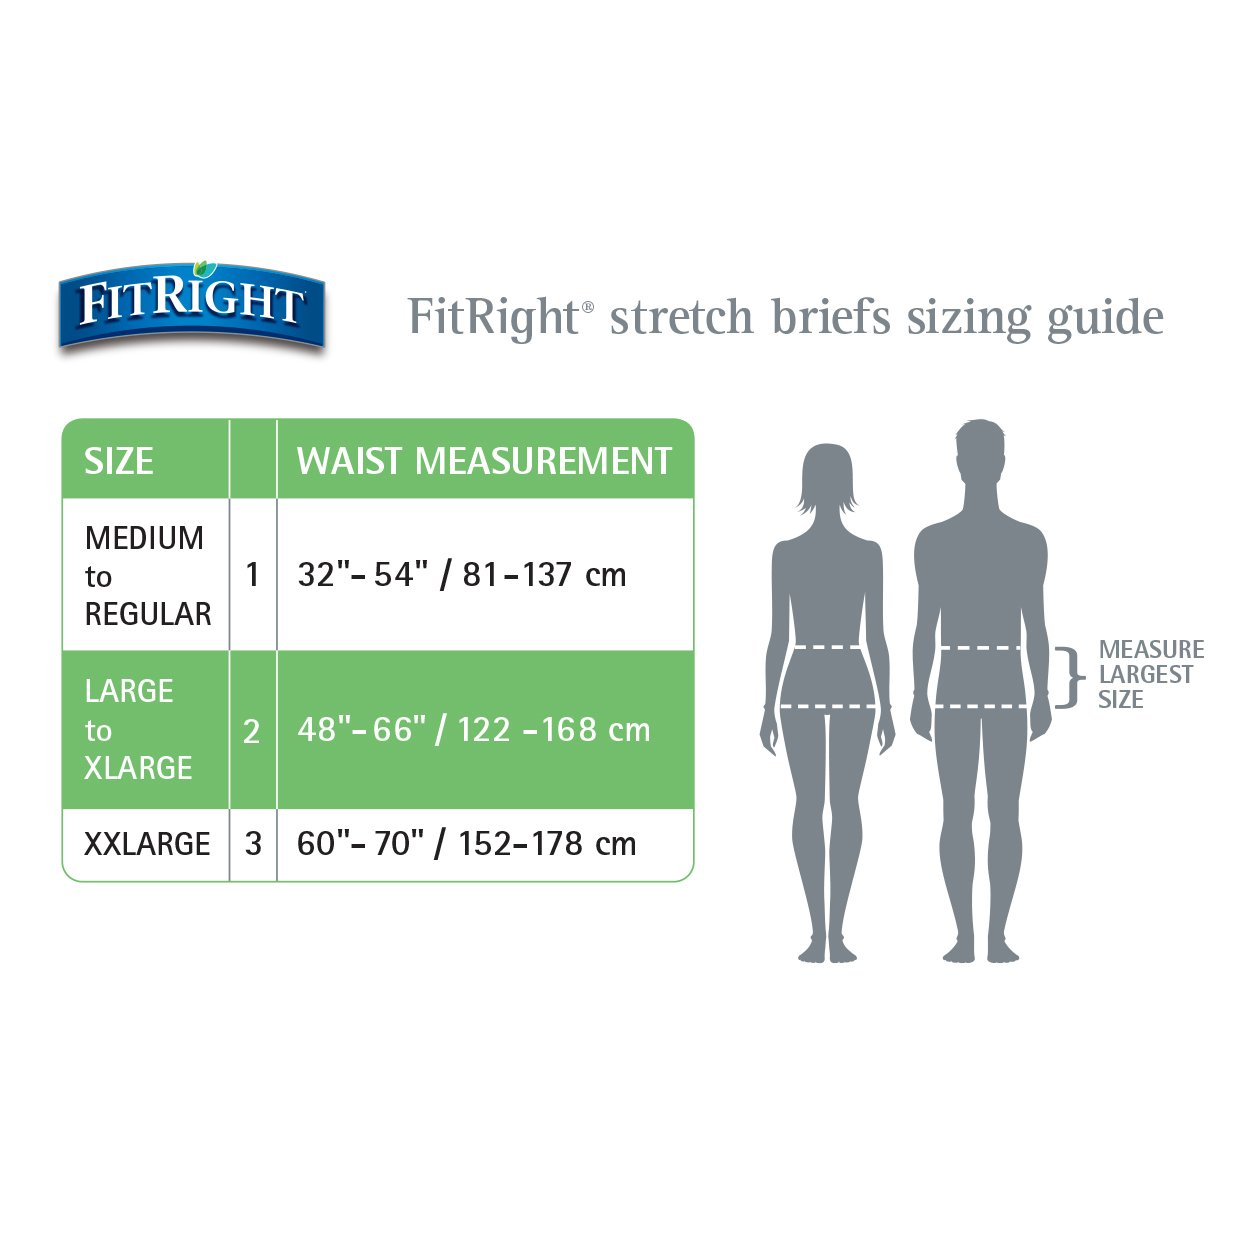 Amazon.com: FitRight Stretch Adult Briefs with Tabs, Heavy Absorbency, X-Large, 60